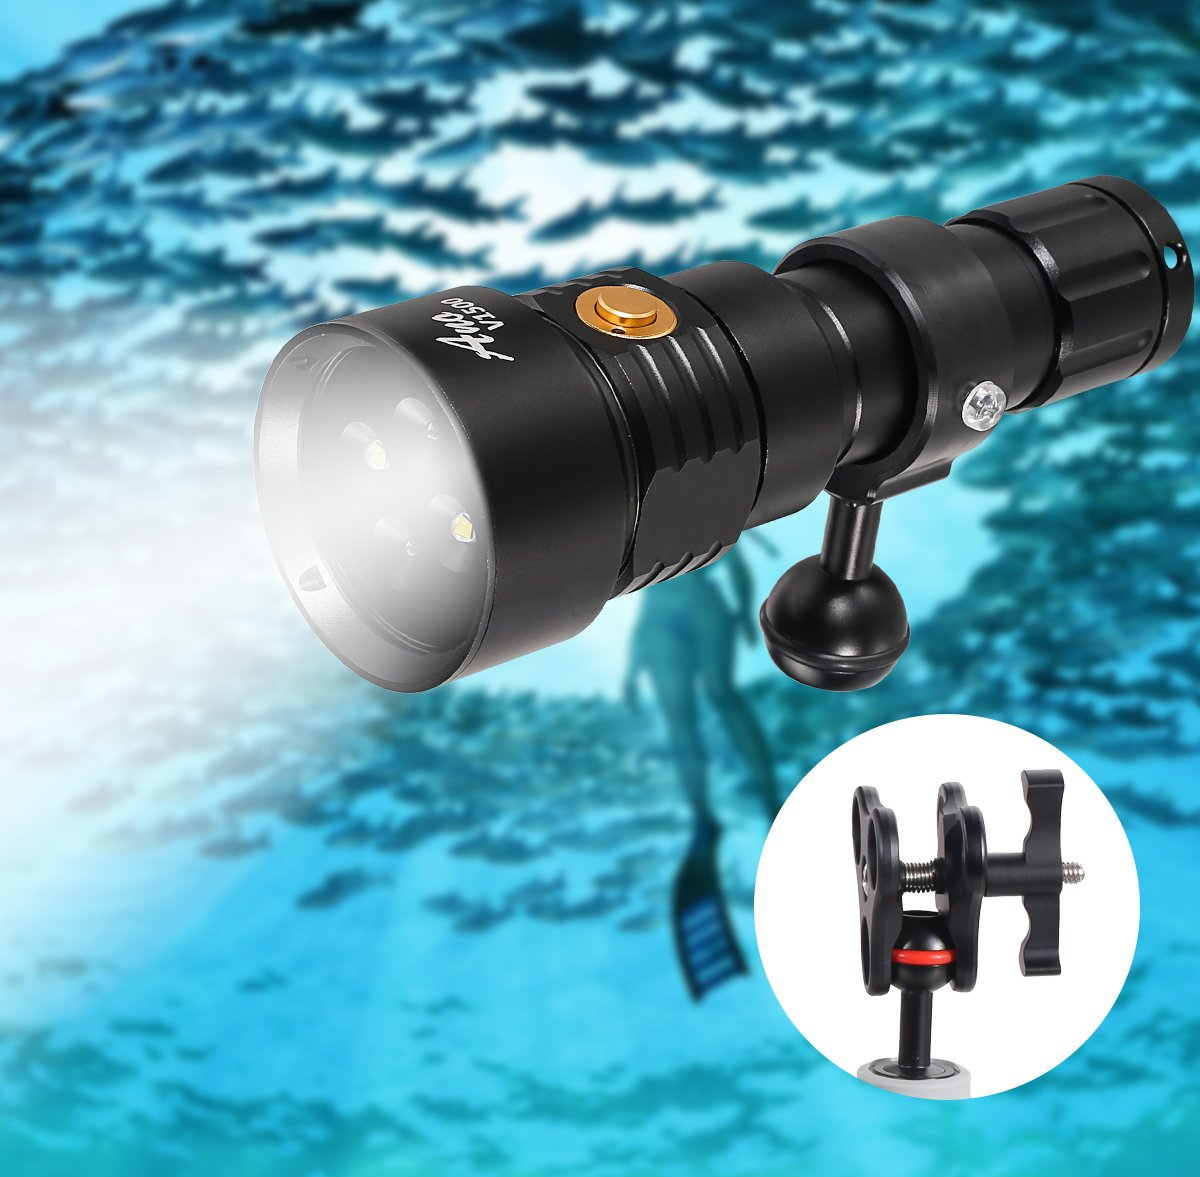 ANO V1500 Diving Video Light with White Red Color 1500 Lumens Diving Photo Light with Kingkong 26650 Battery and USB Charger Recreational Waterproof Underwater Video Light